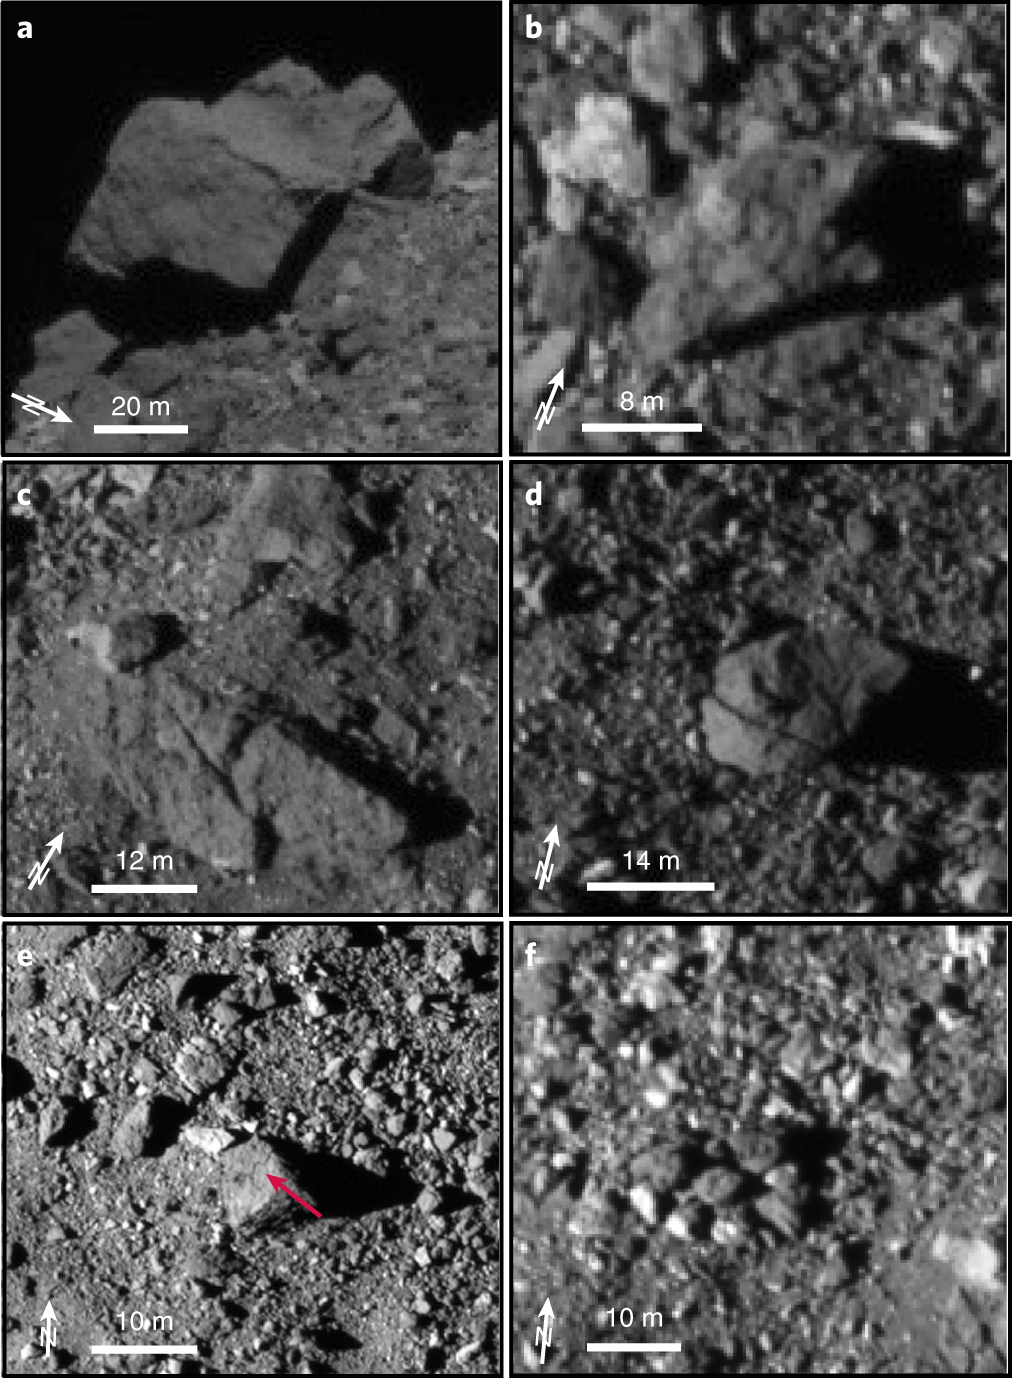 Craters, boulders and regolith of (101955) Bennu indicative of an